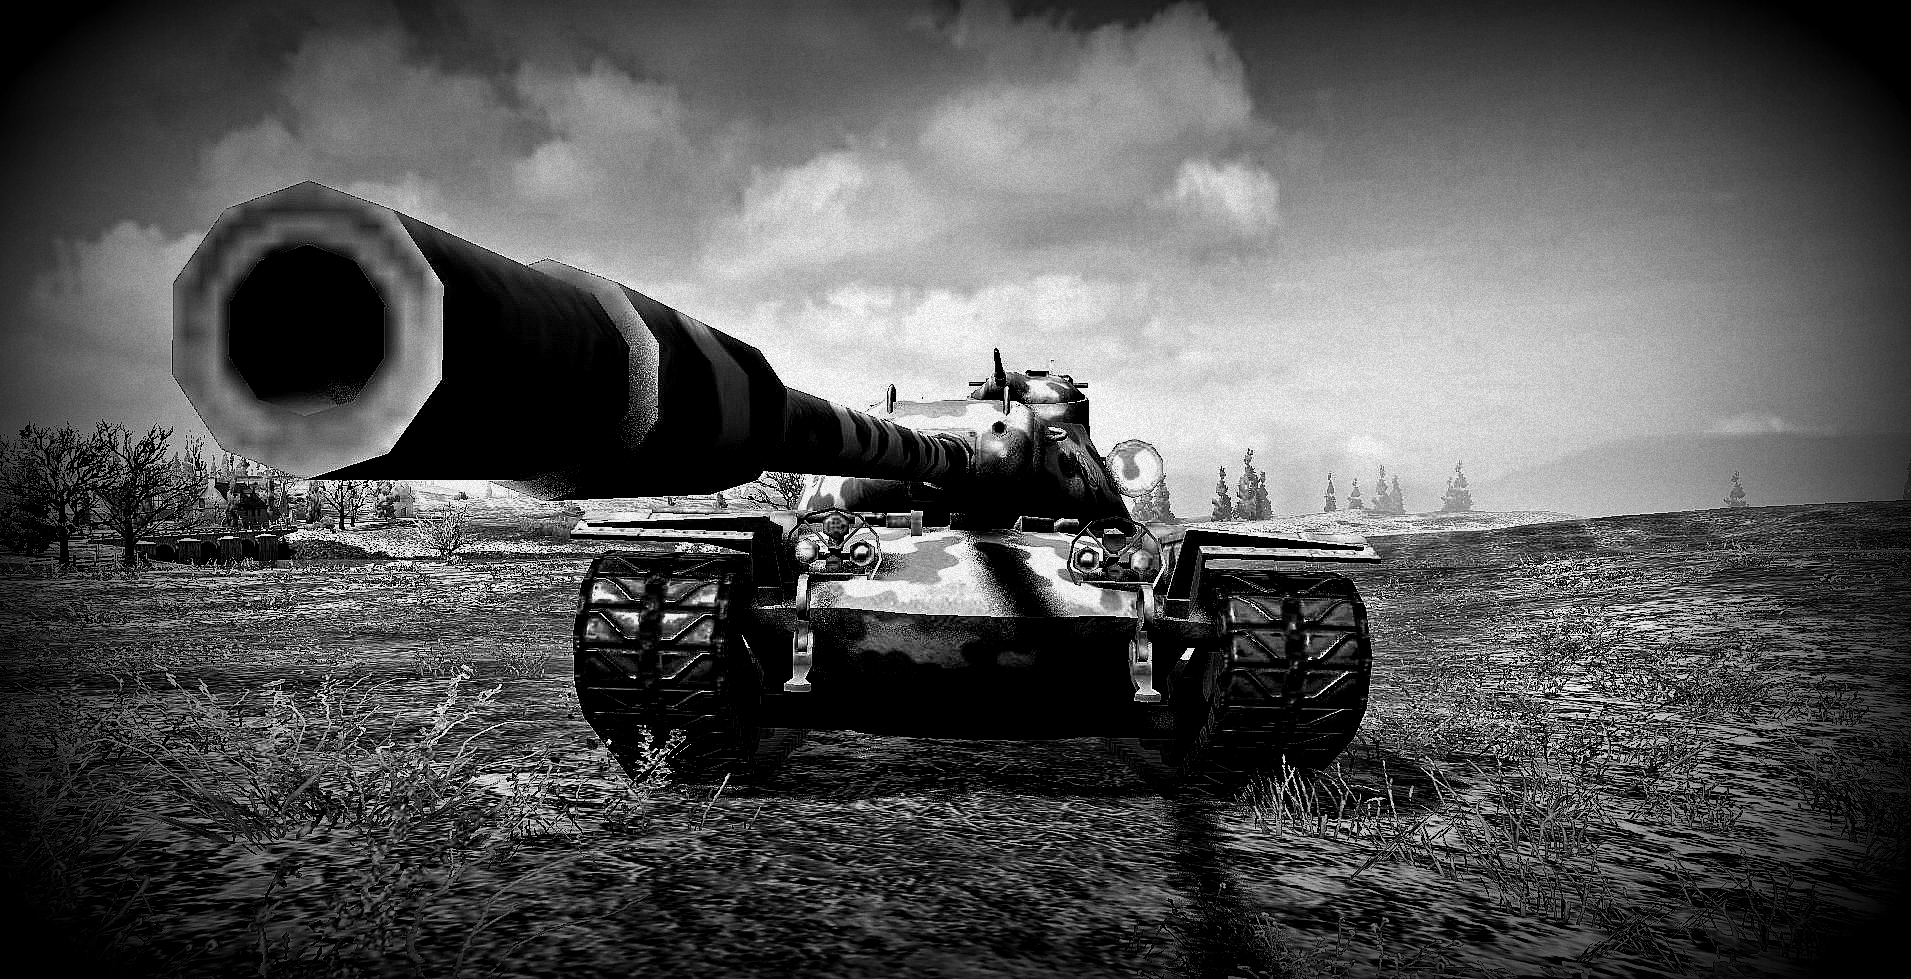 World Of Tanks T110e5 Hd Wallpaper 1913 X 879 By